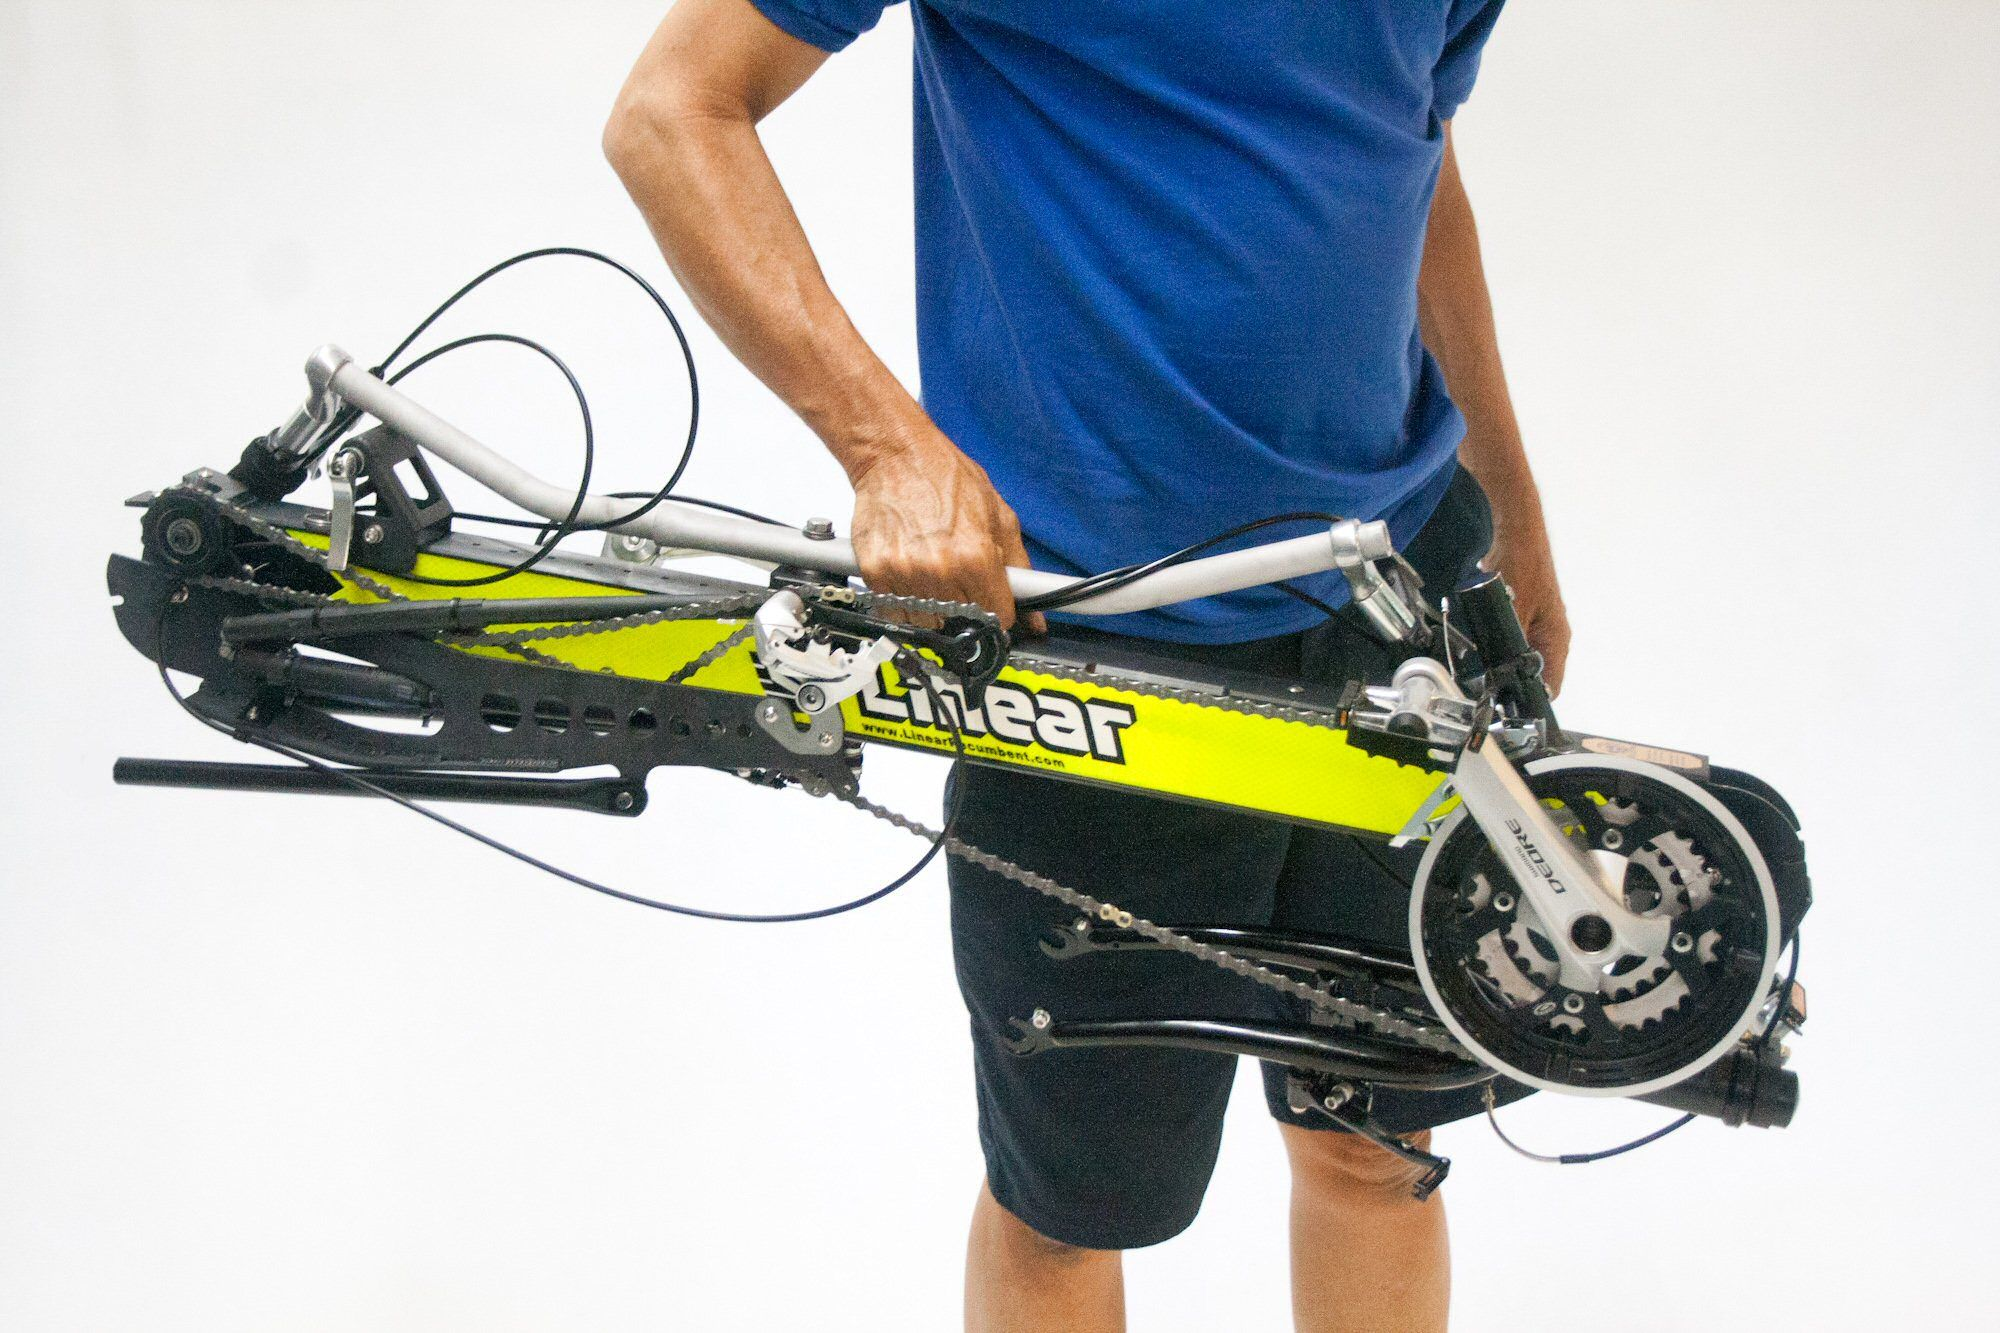 Linear Limo Foldable Recumbent Bike Why Not Be Comfortable